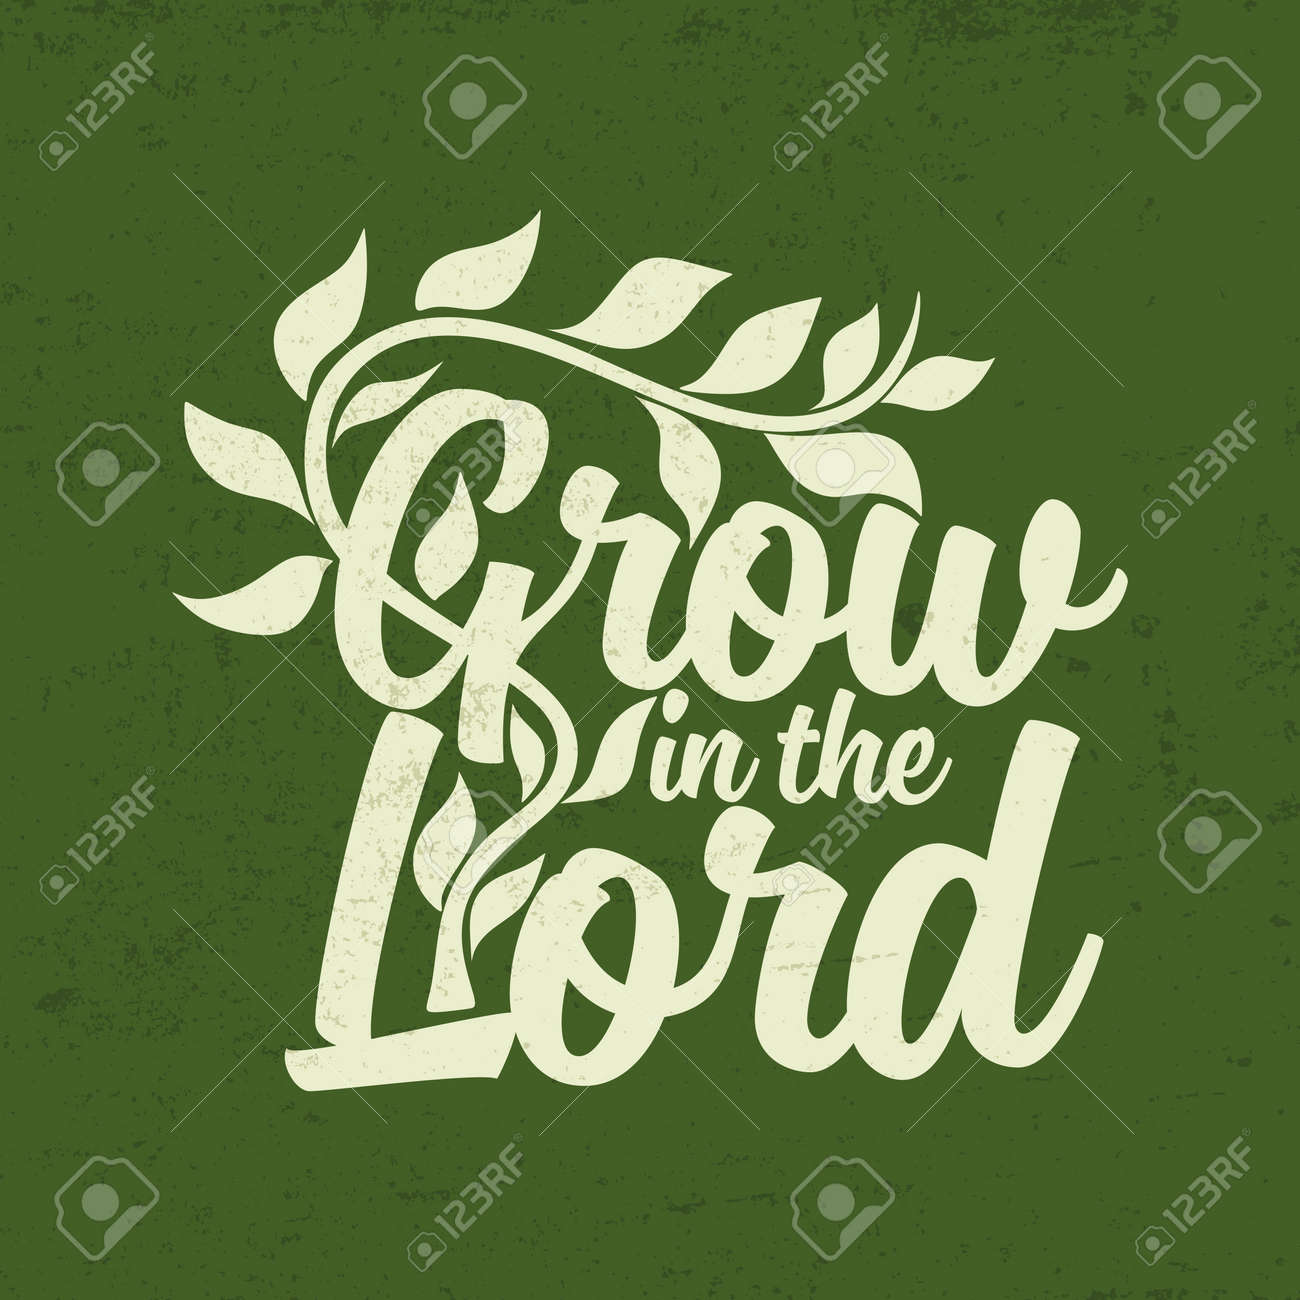 Grow in the Lord. Lettering. - 49027109